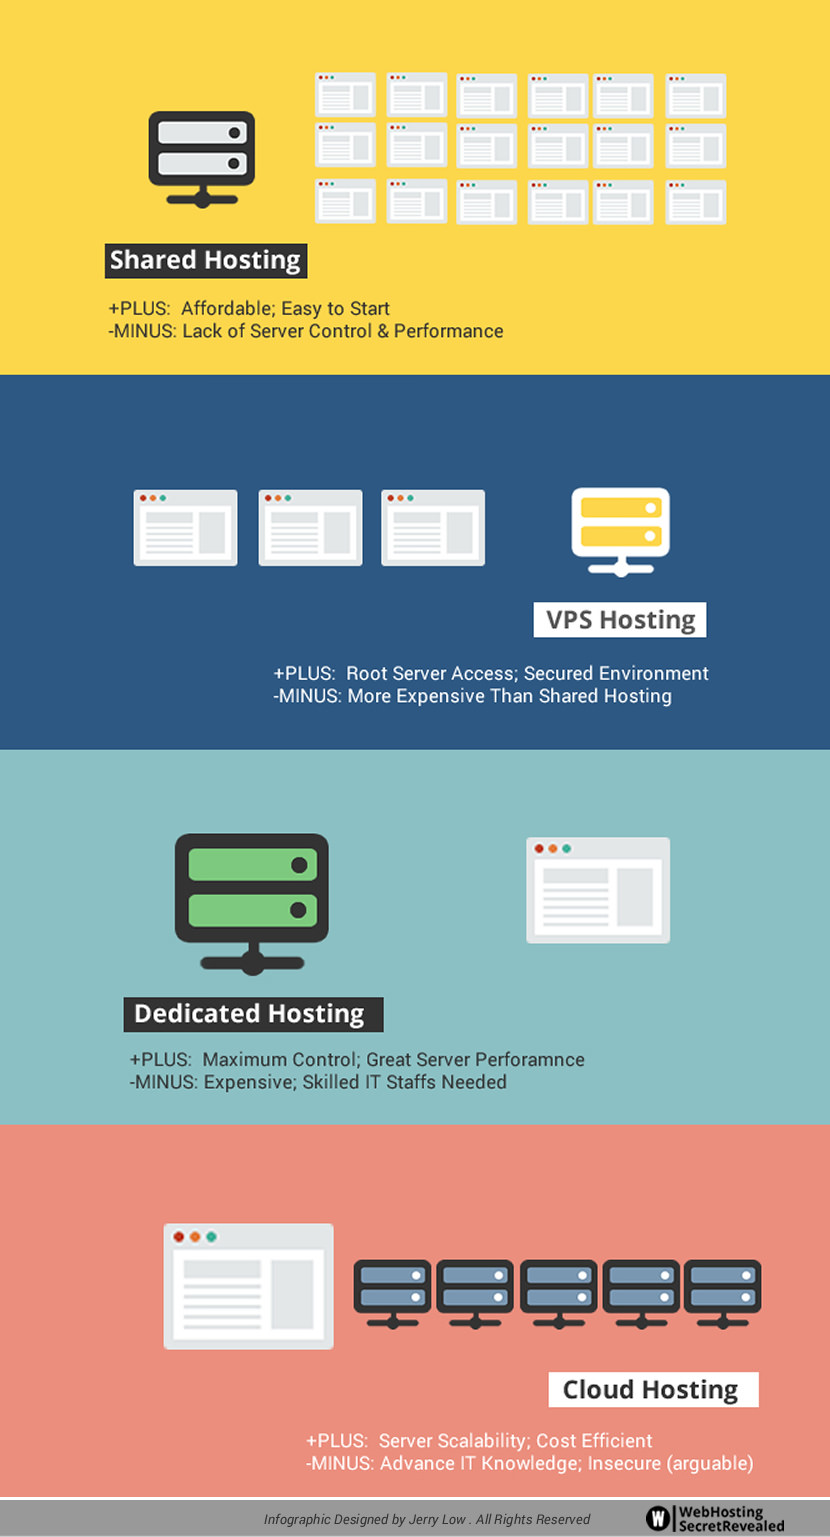 Cheap Yet Reliable Shared Web Hosting For WordPress